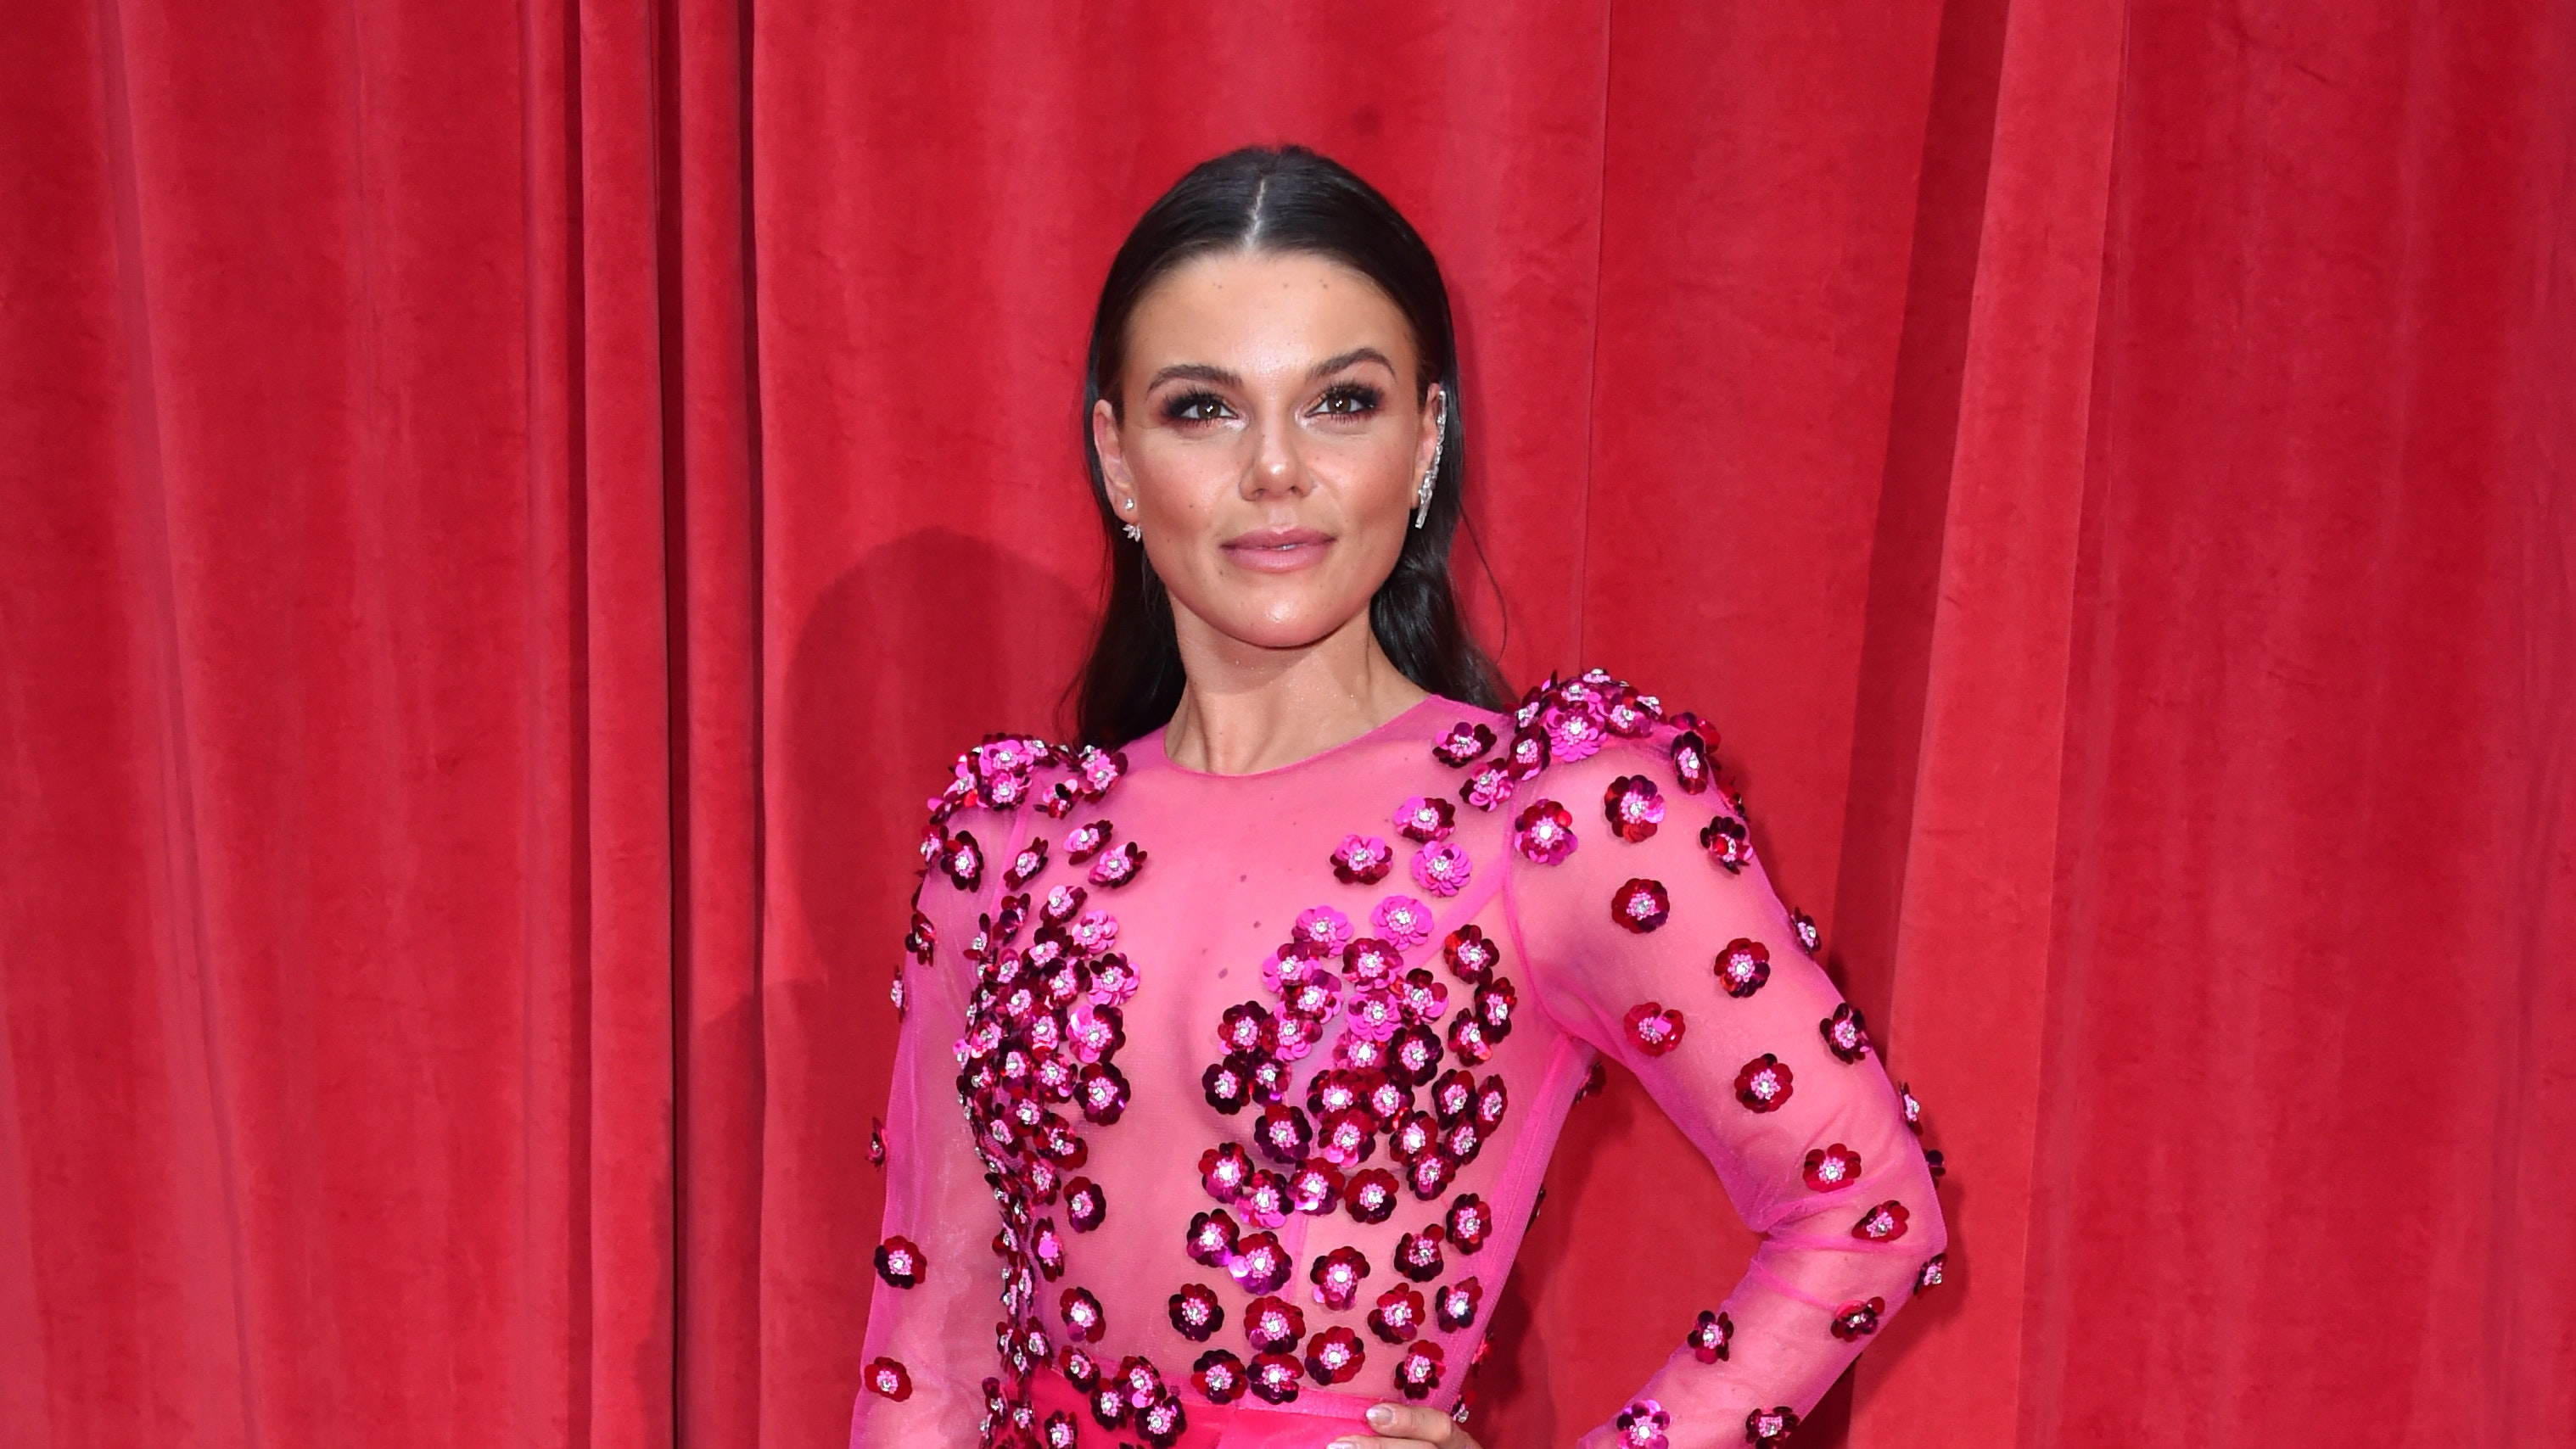 Coronation Street star leaves for 'pastures new'